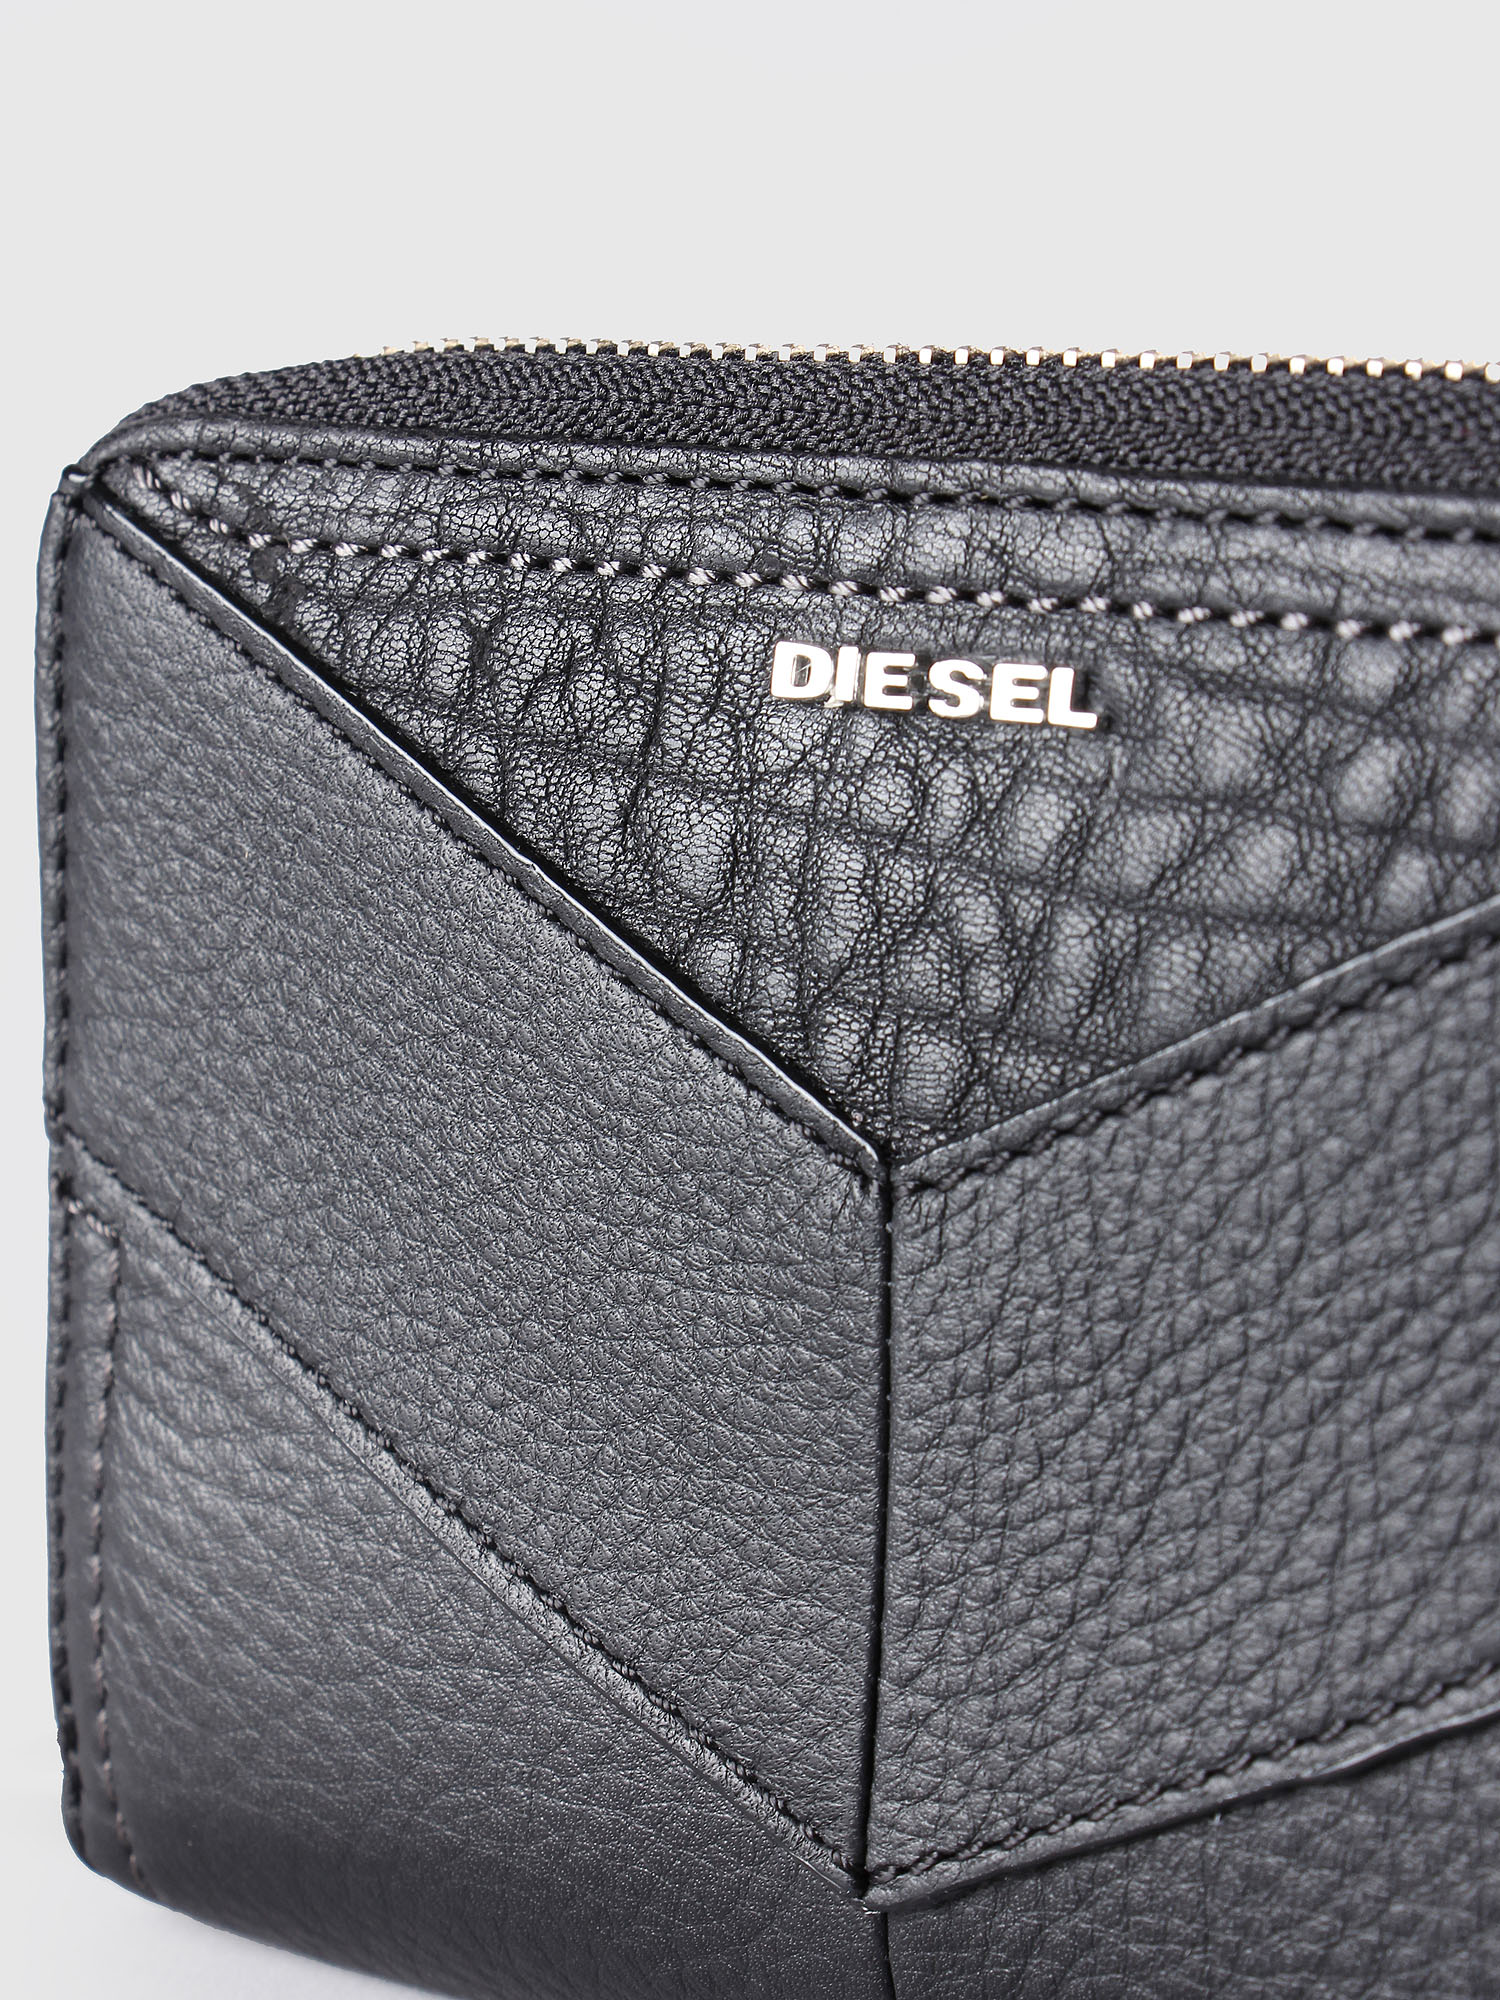 Diesel - JADDAA,  - Small Wallets - Image 3